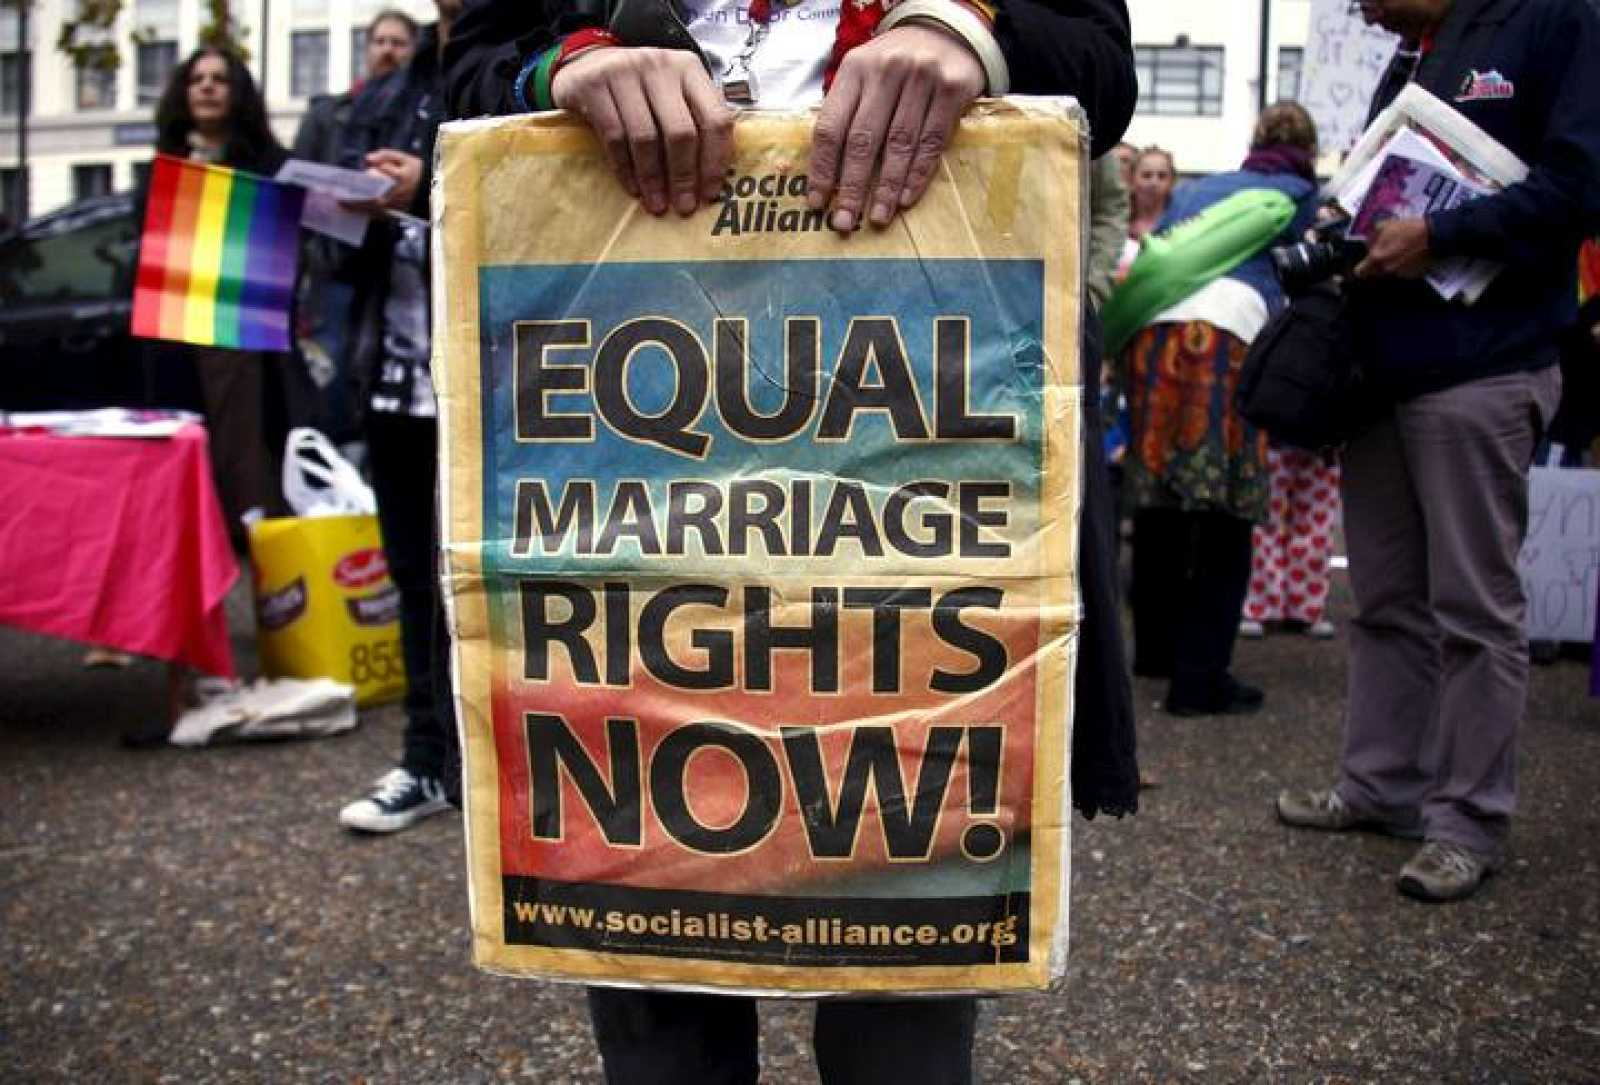 A gay rights activist holds a placard during a rally supporting same-sex marriage, in Sydney, Australia